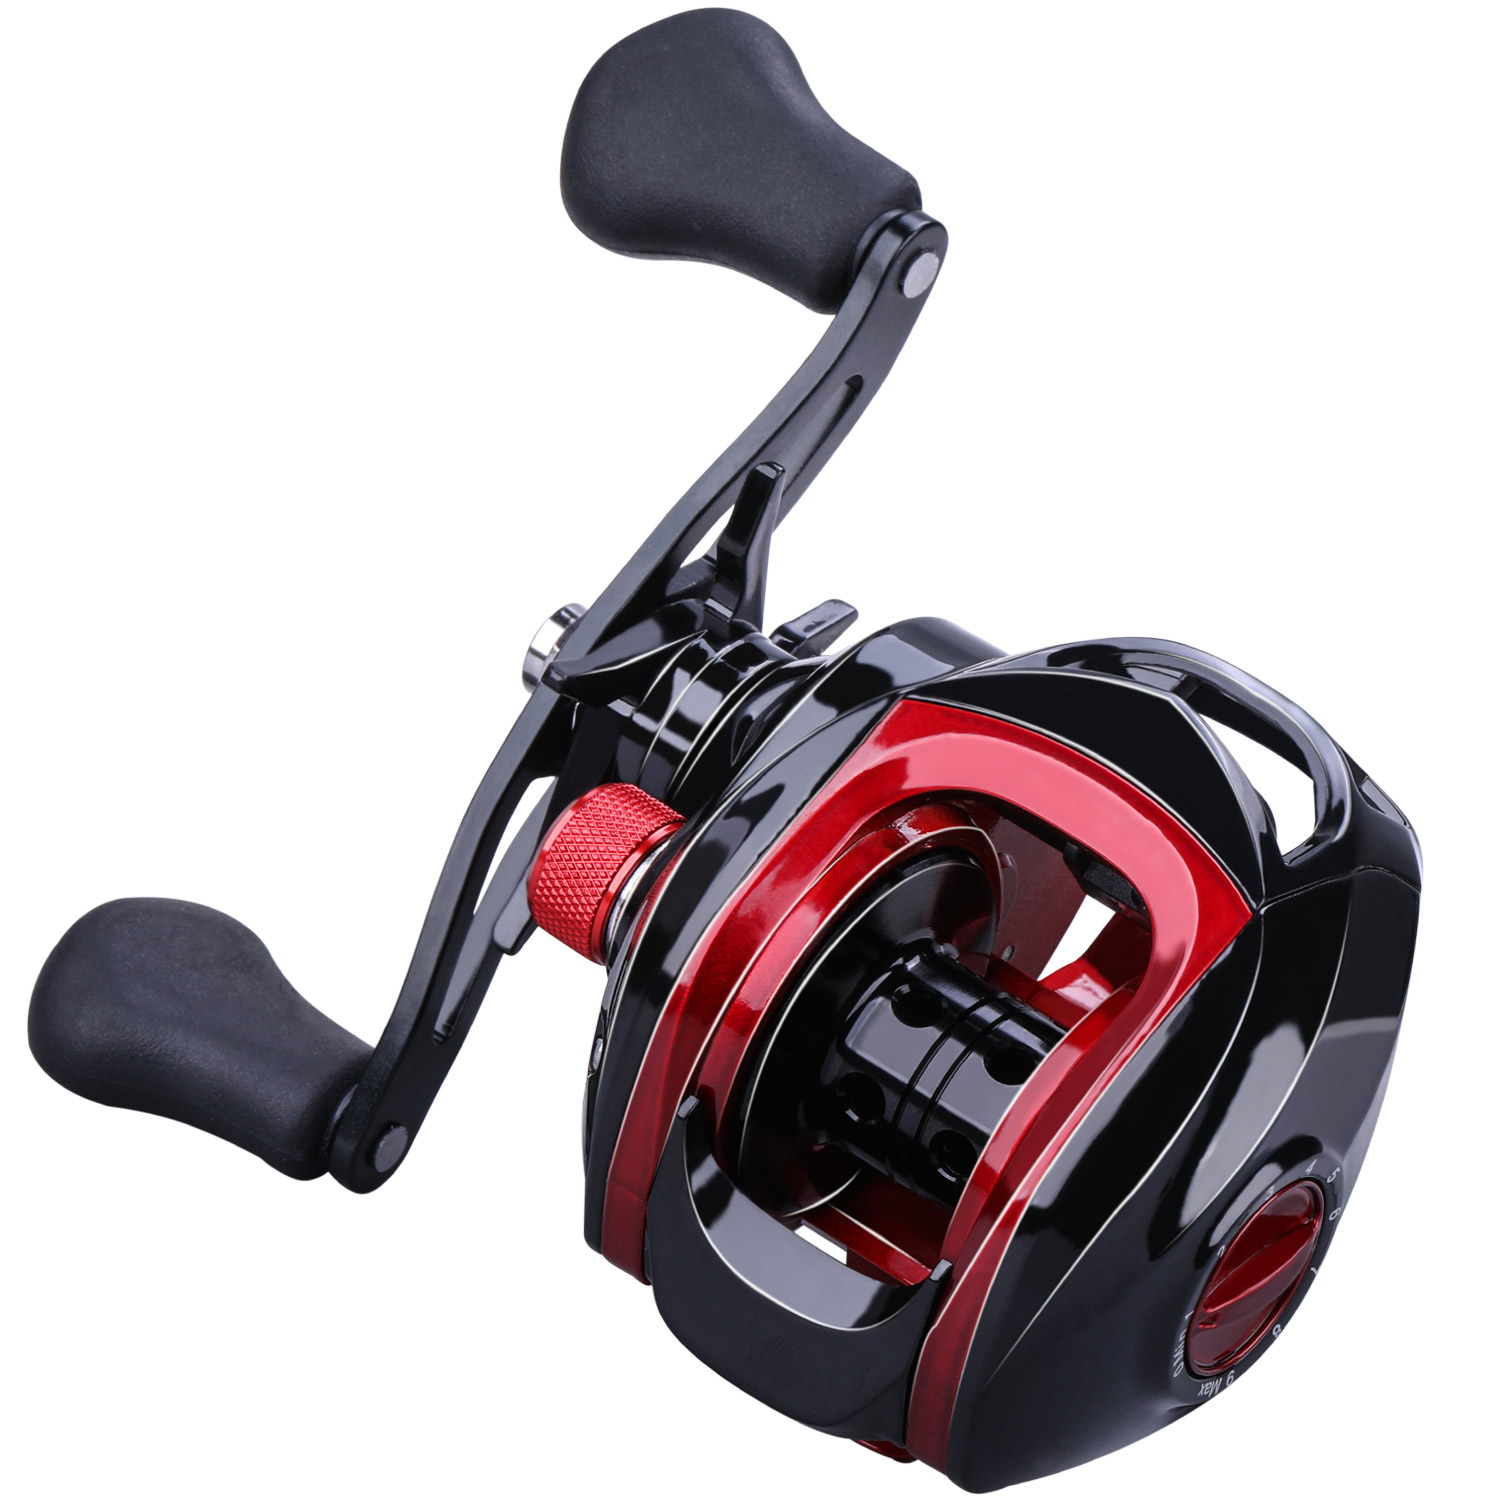 Sougayilang 17+1BB Baitcasting Reel 7.1:1 17+1BB Carp Fishing Reel with Magnetic Brake 8KG Max Drag Left Right Hand Casting Reel